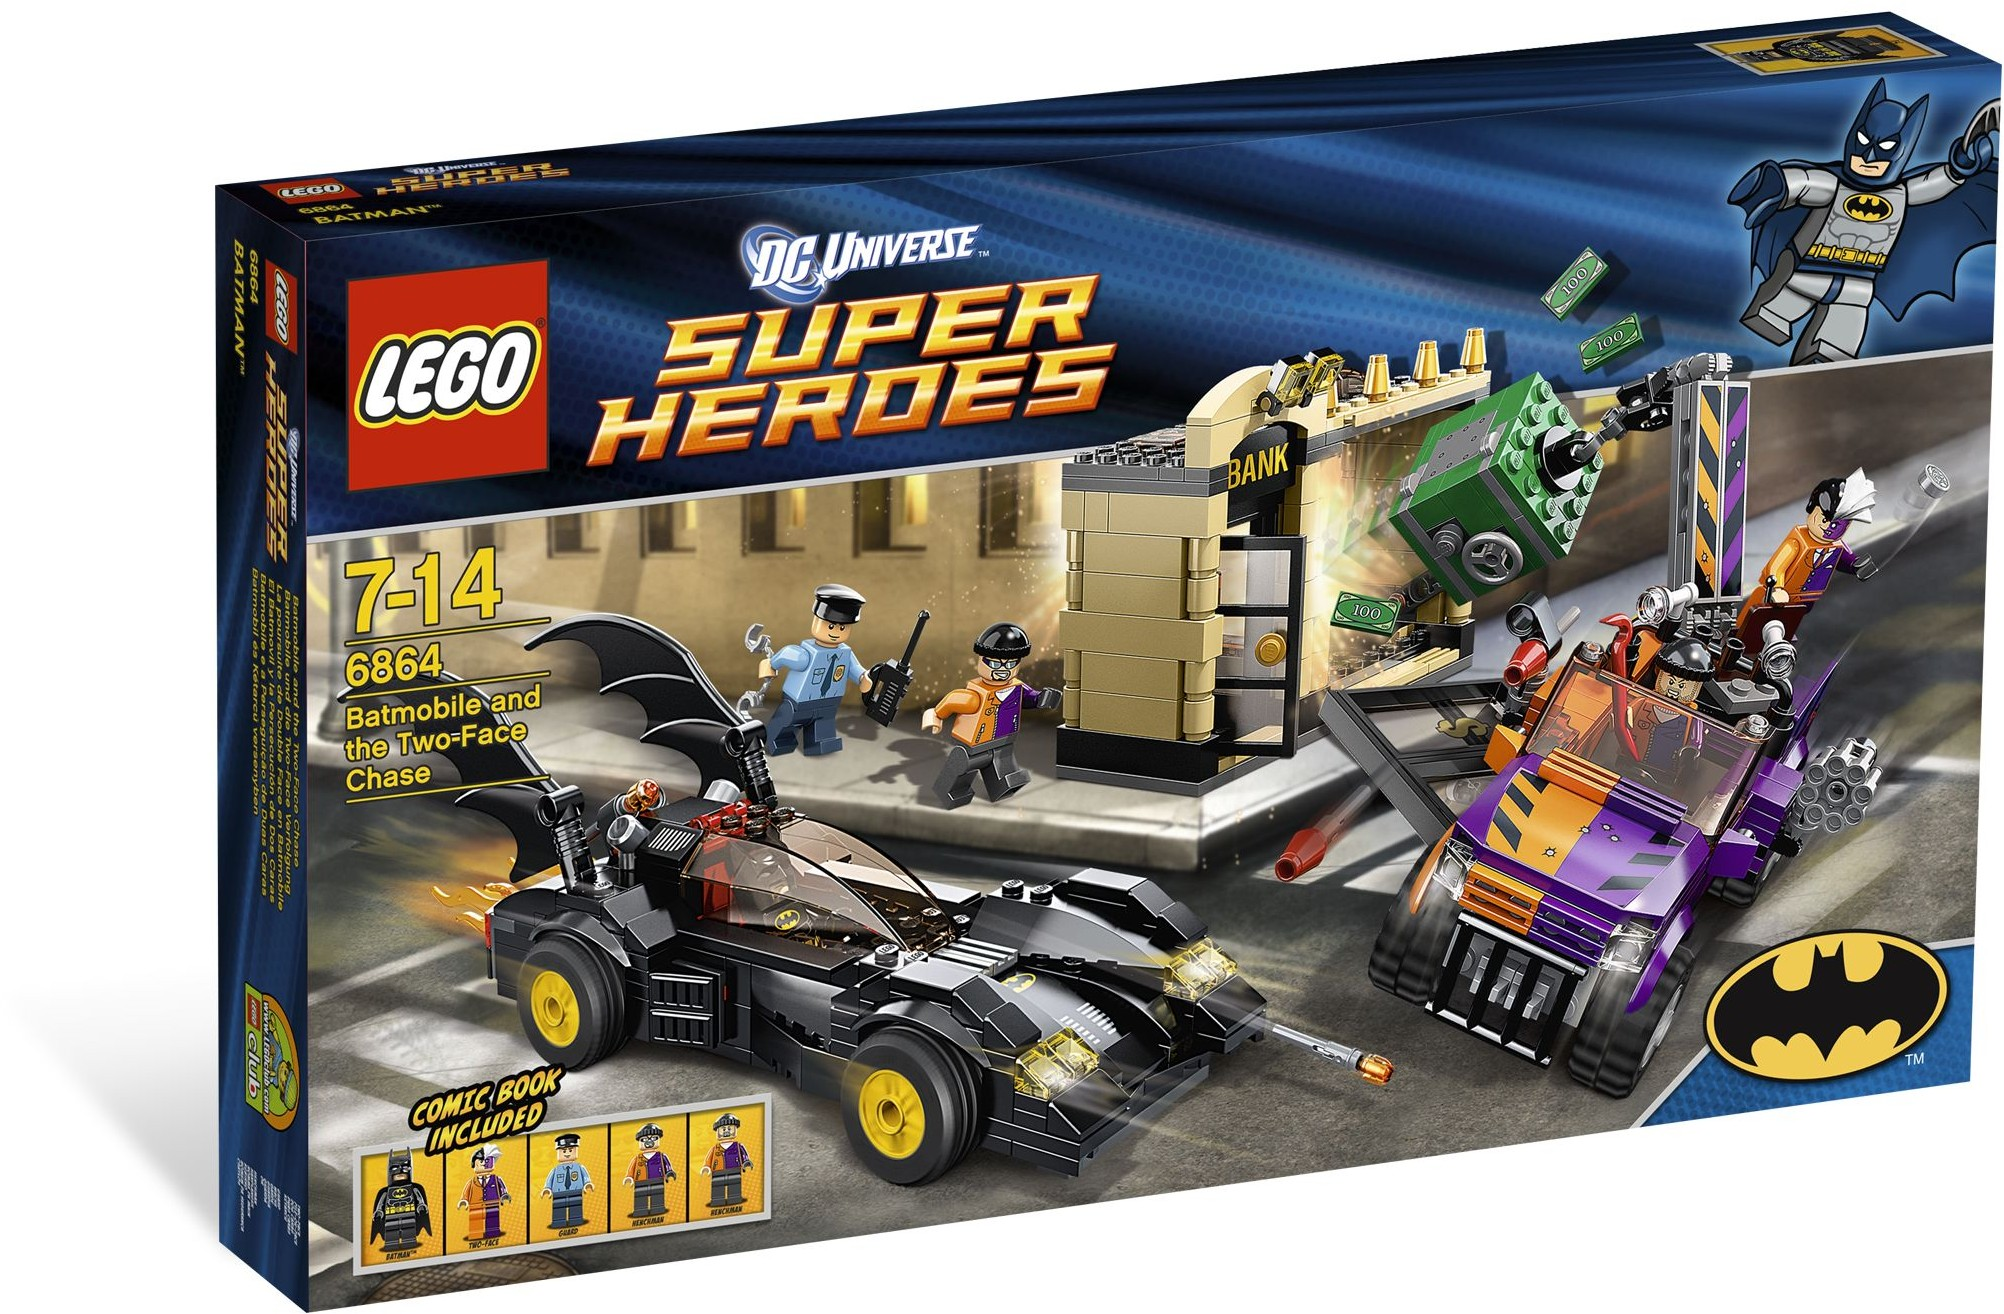 LEGO 6864 - Super Heroes - The Batmobile and the Two-Face Chase